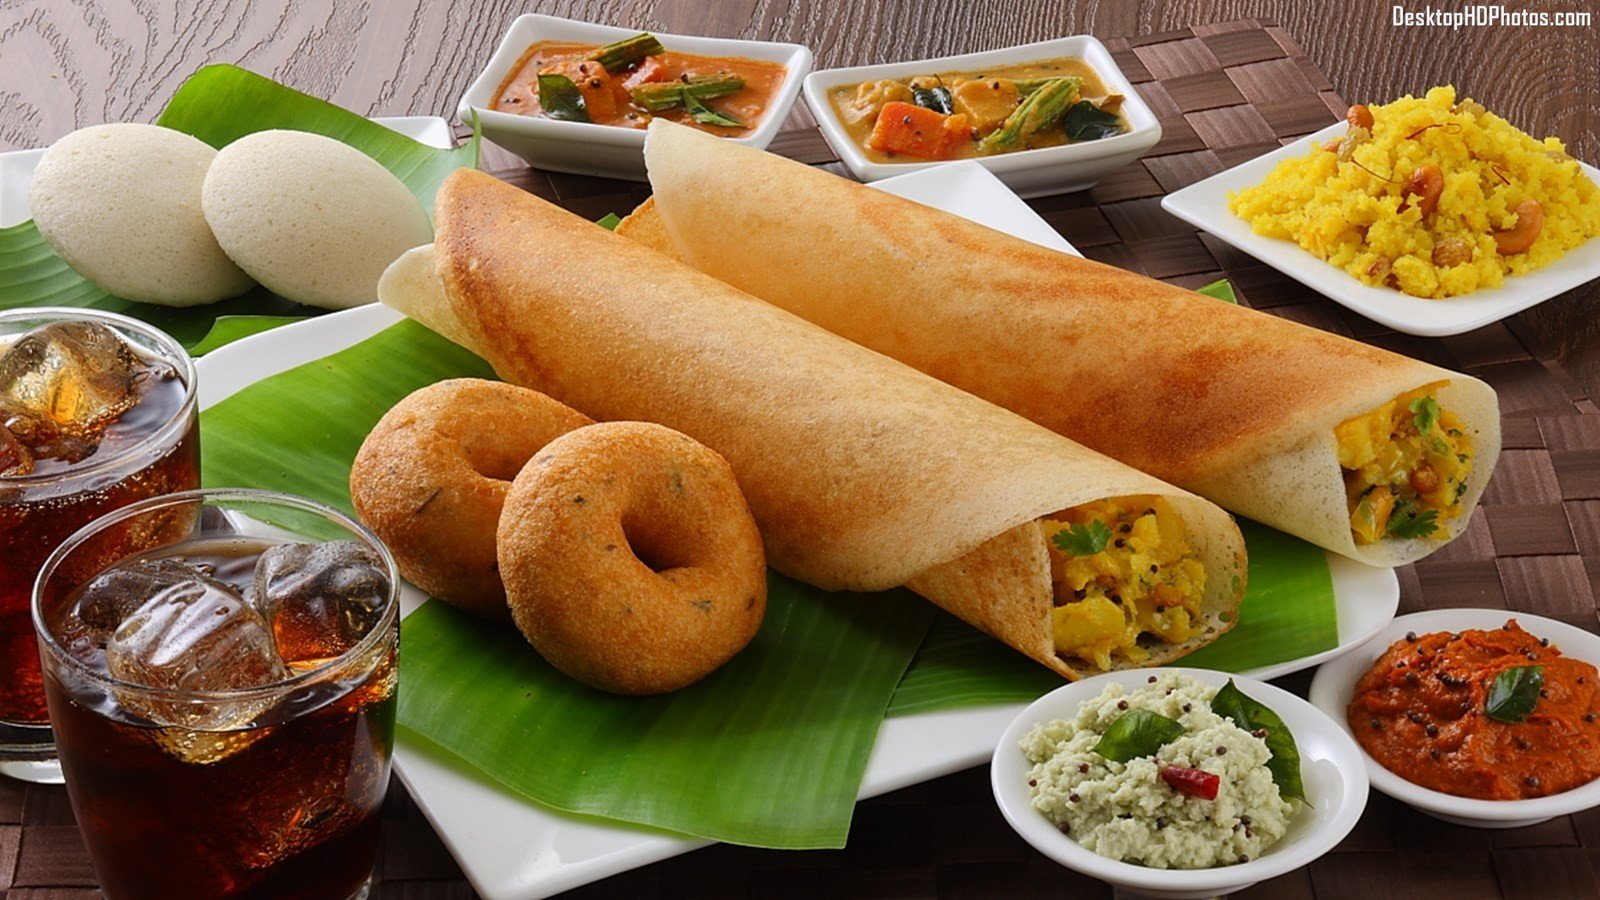 Penmai recipes ebook pdf collections free download penmai click here to download penmais idly dosa recipes ebook forumfinder Images